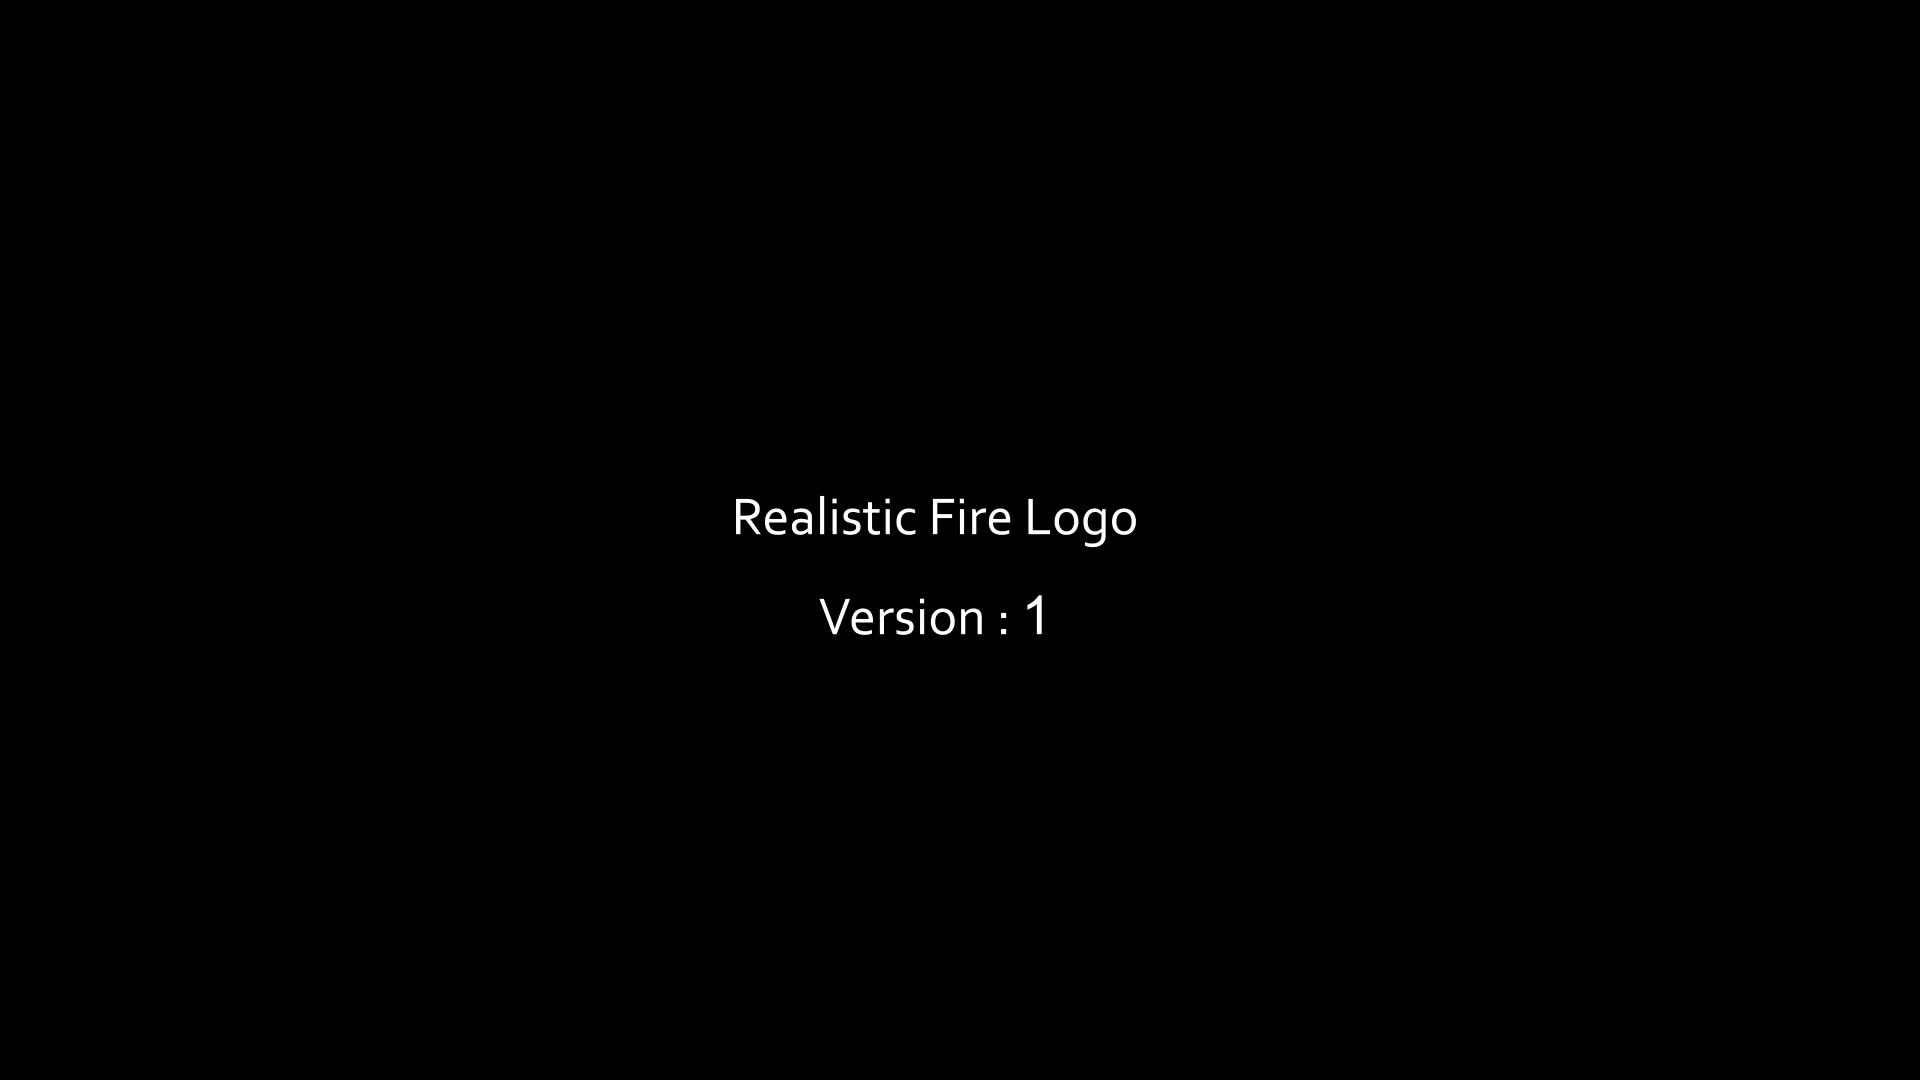 Realistic Fire Logo 2 - Download Videohive 20537273